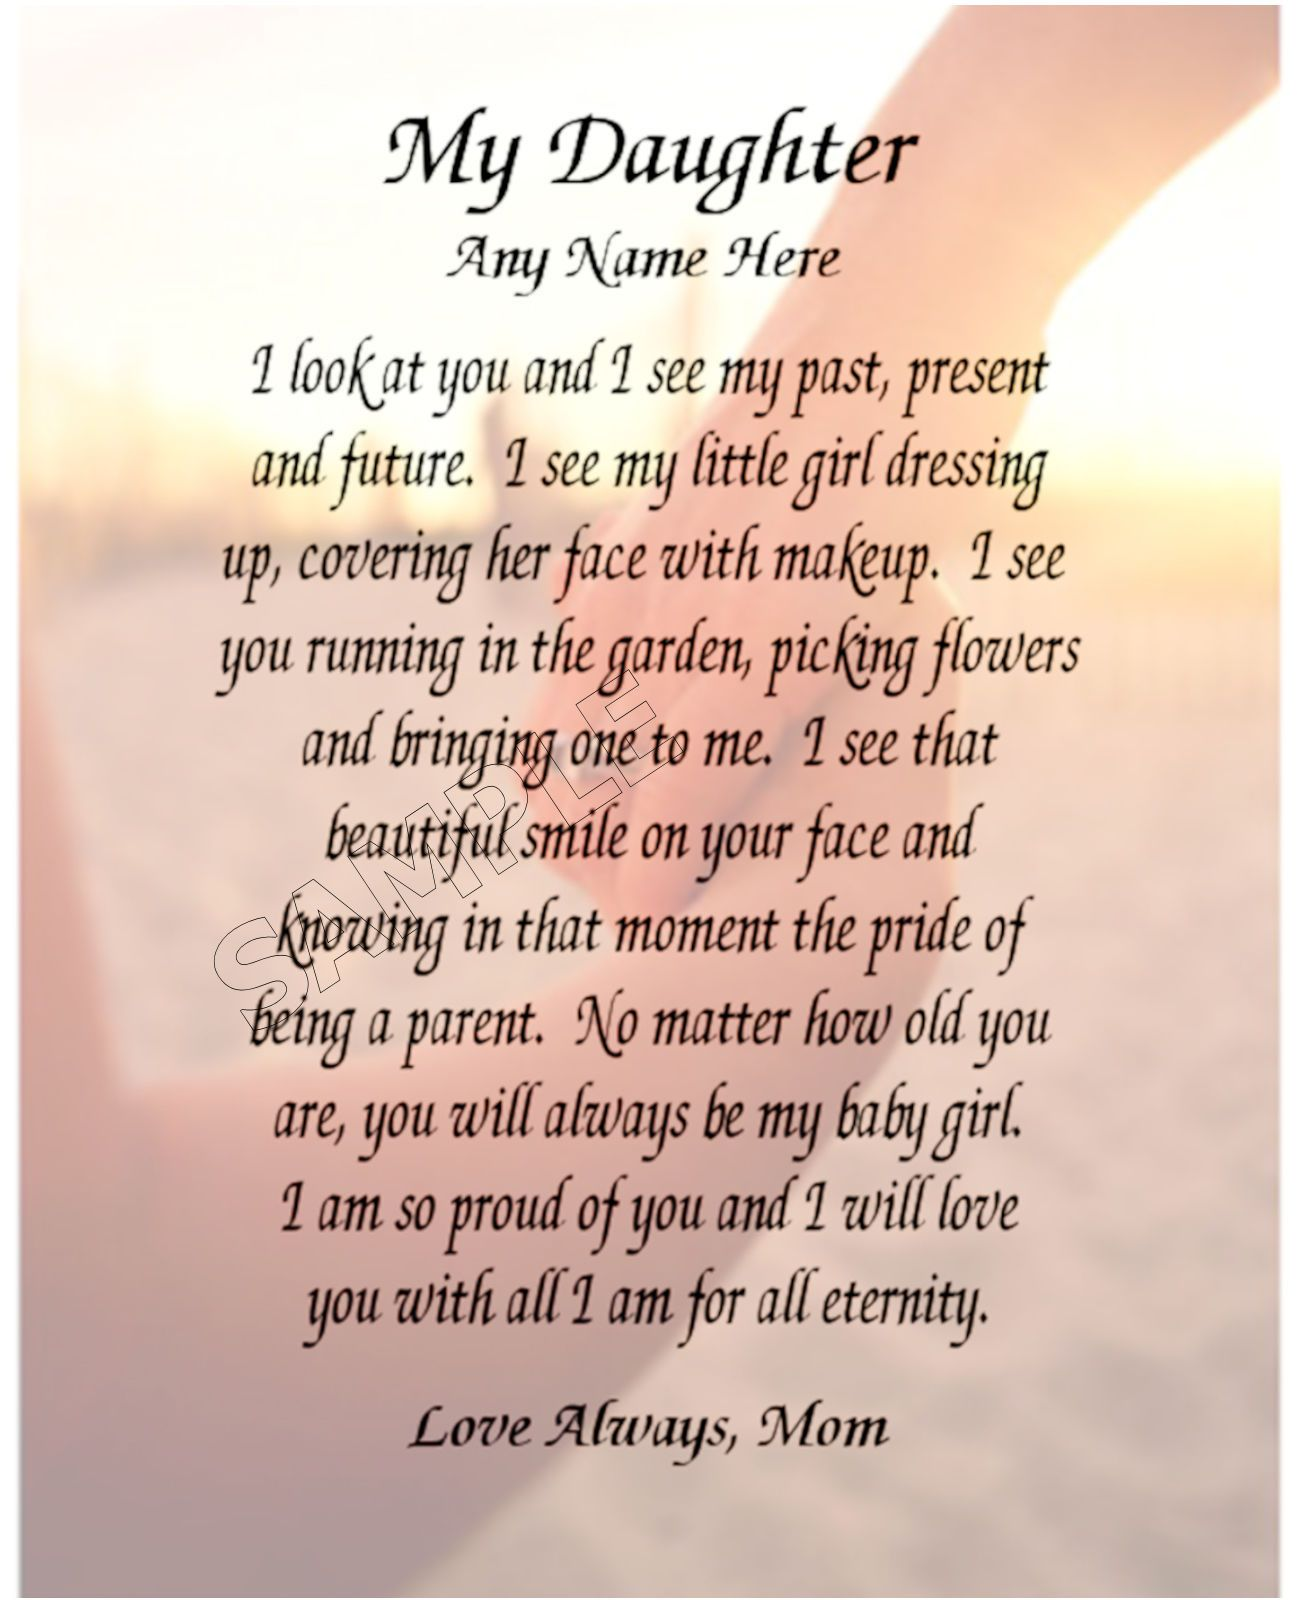 MY DAUGHTER PERSONALIZED ART POEM MEMORY BIRTHDAY GIFT